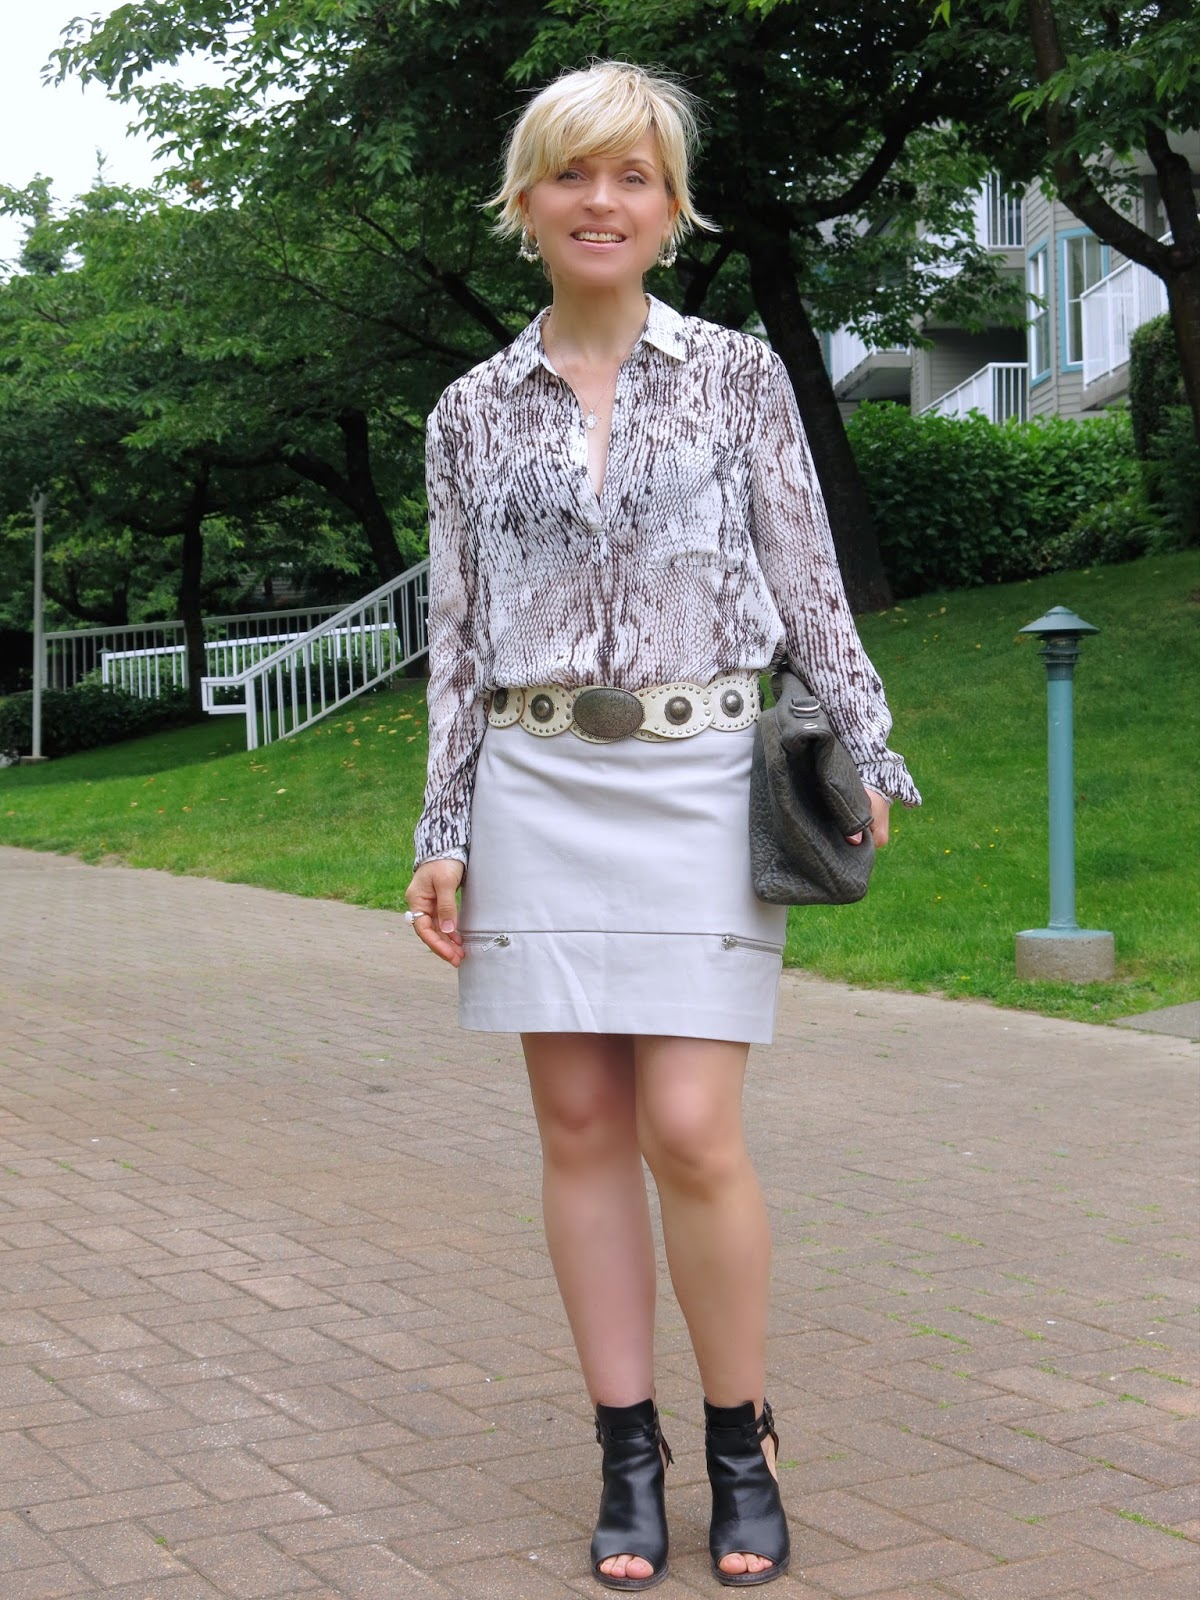 styling a faux-leather miniskirt with a snake-print blouse and concho belt